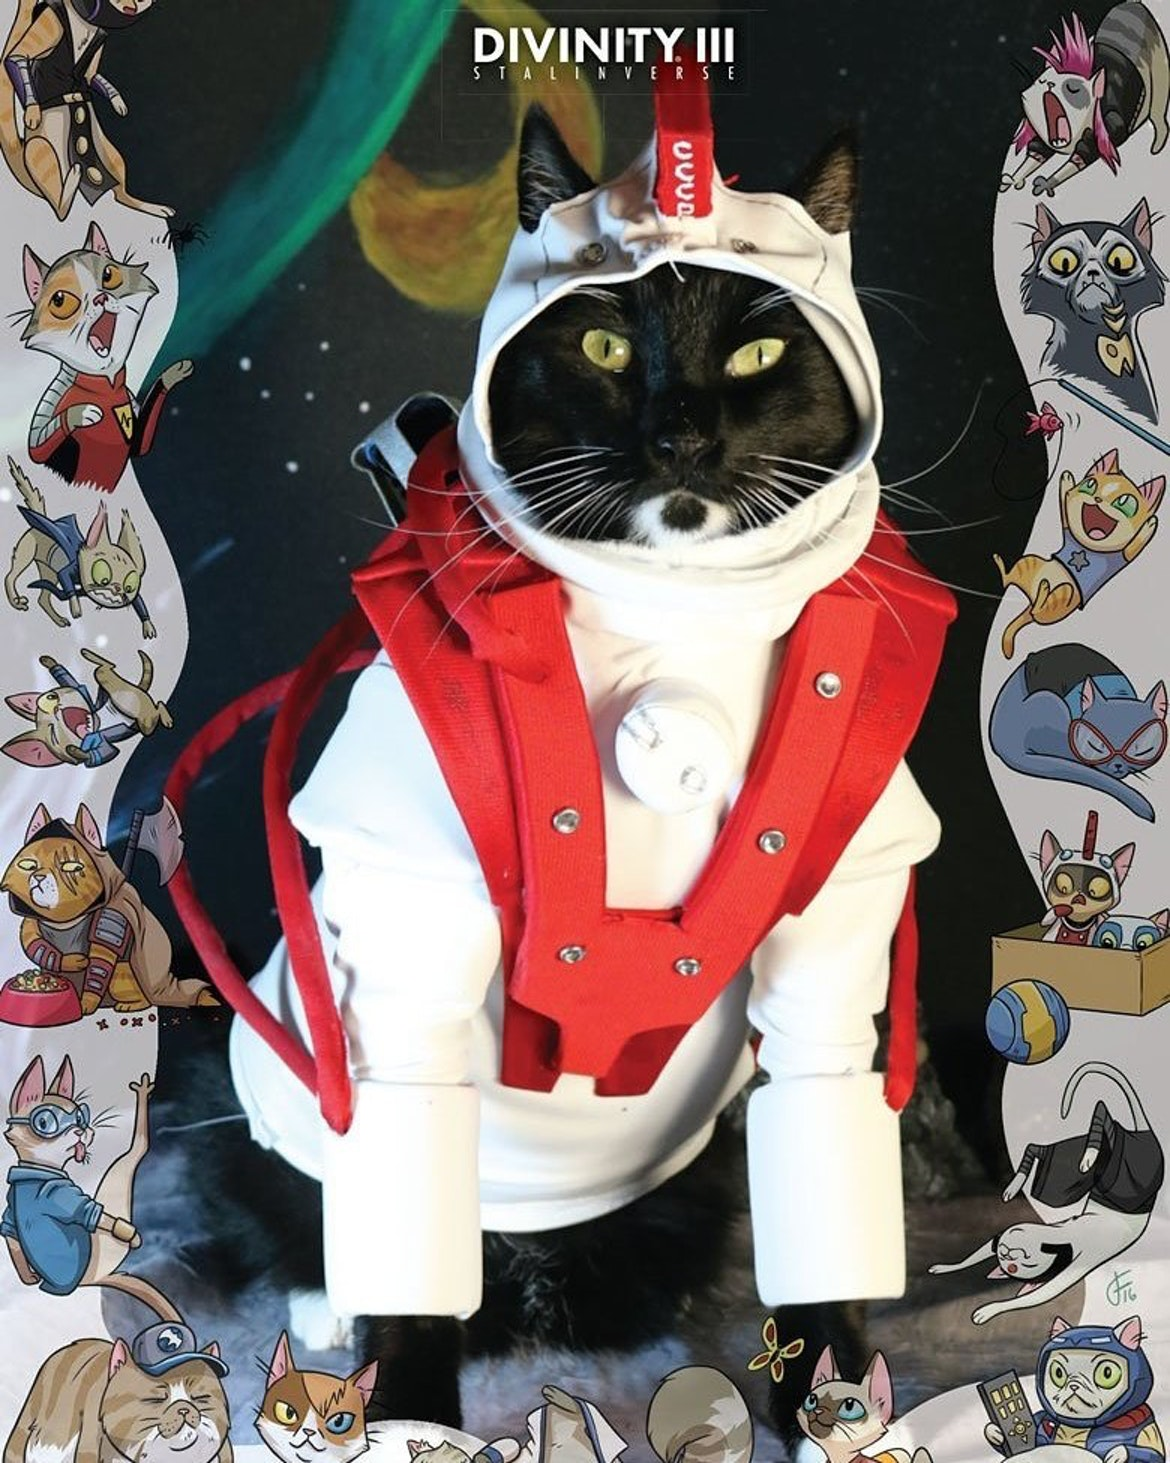 Cat Cosplay Variant Cover for Valiant Comic Divinity